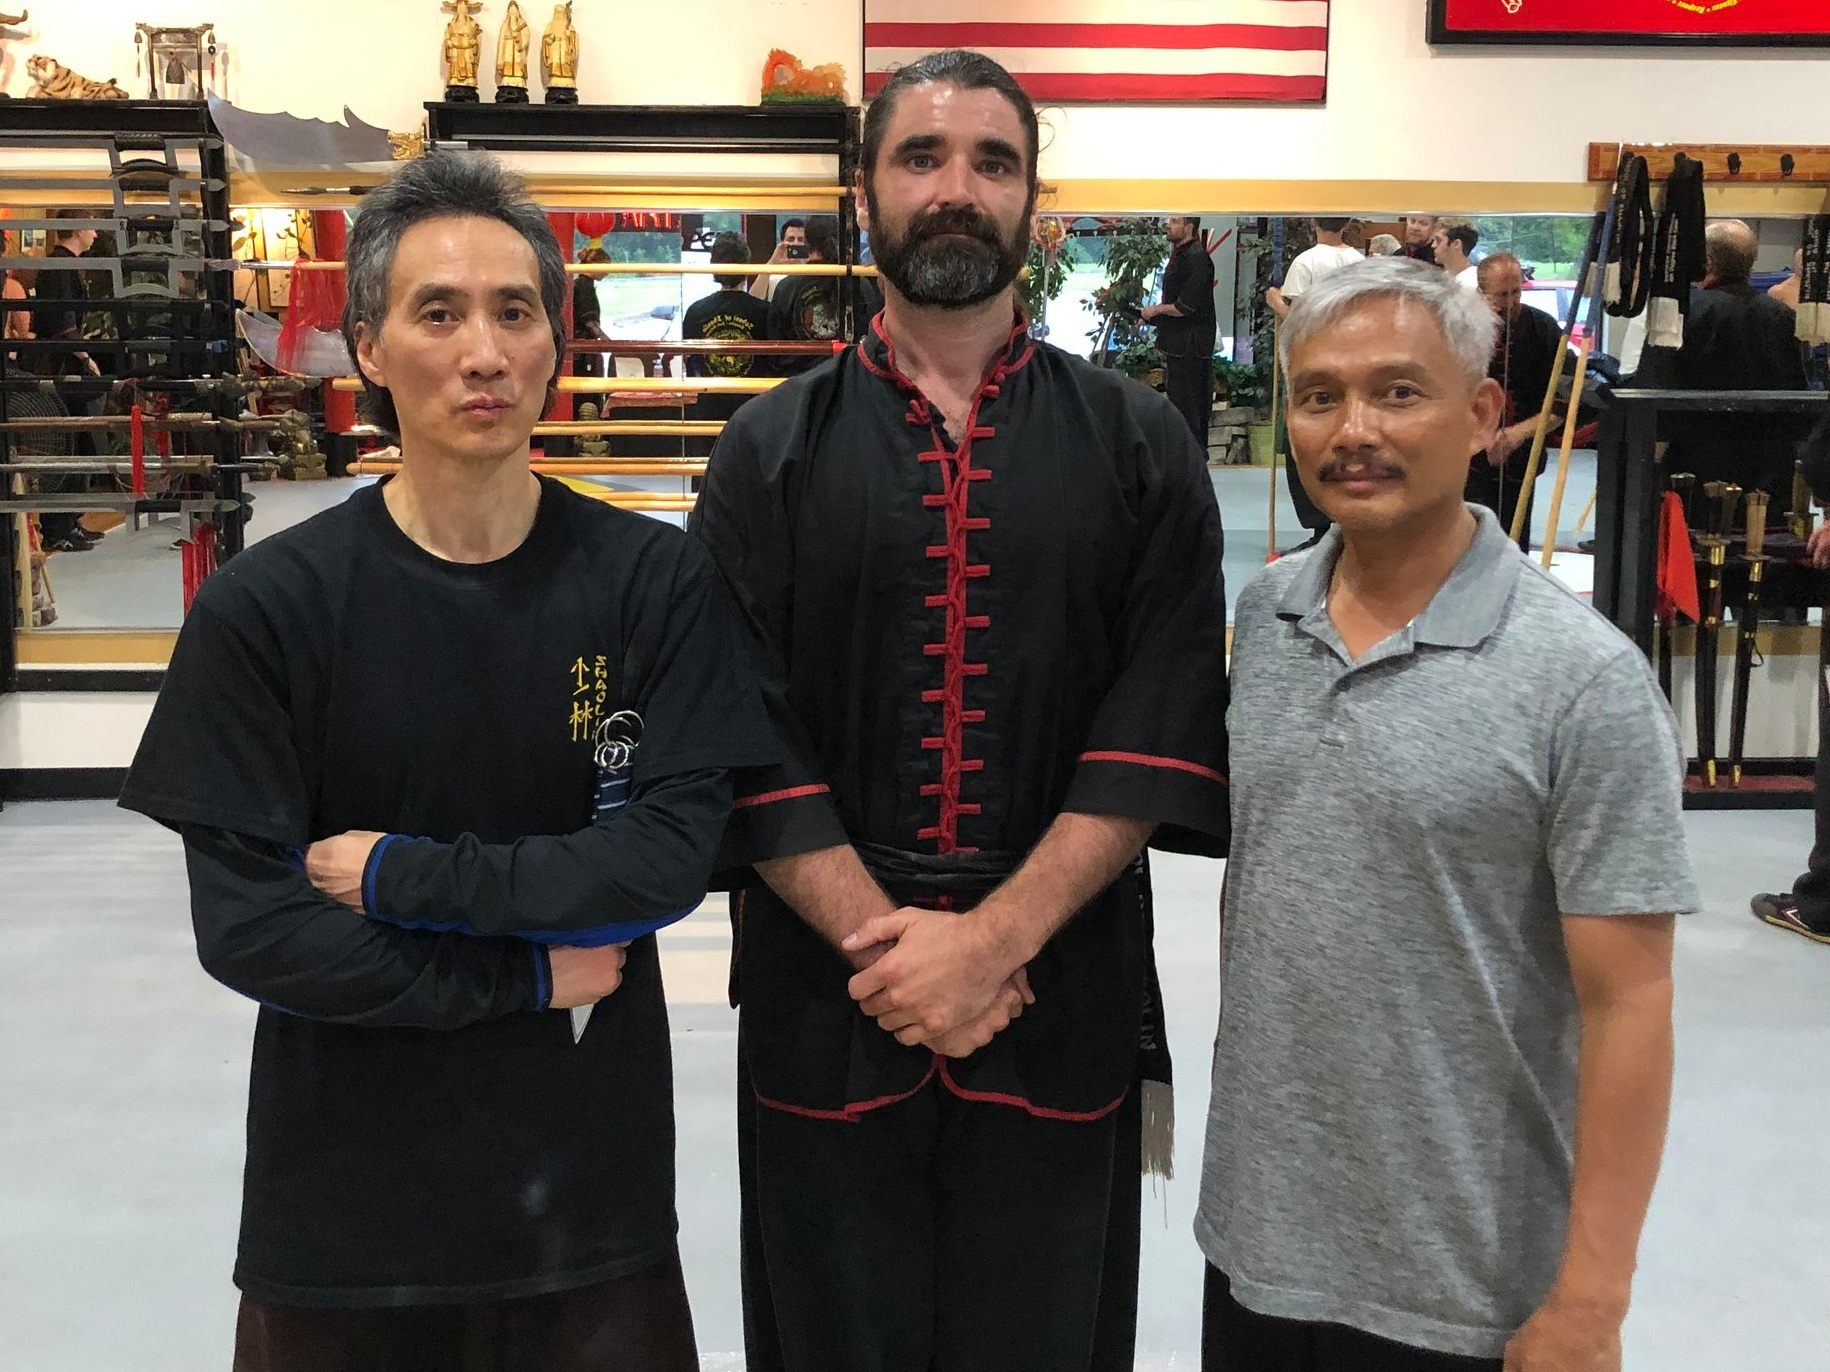 Rick WinG - Sifu Rick Wing was a disciple of Sifu Wong Jack-Man in the style of Bak Si Lum. Sifu Rick Wing preserves the art of Bak Si Lum through his published works, seminars, and classes, which Sifu Tristan Frankus has been honored to attend.